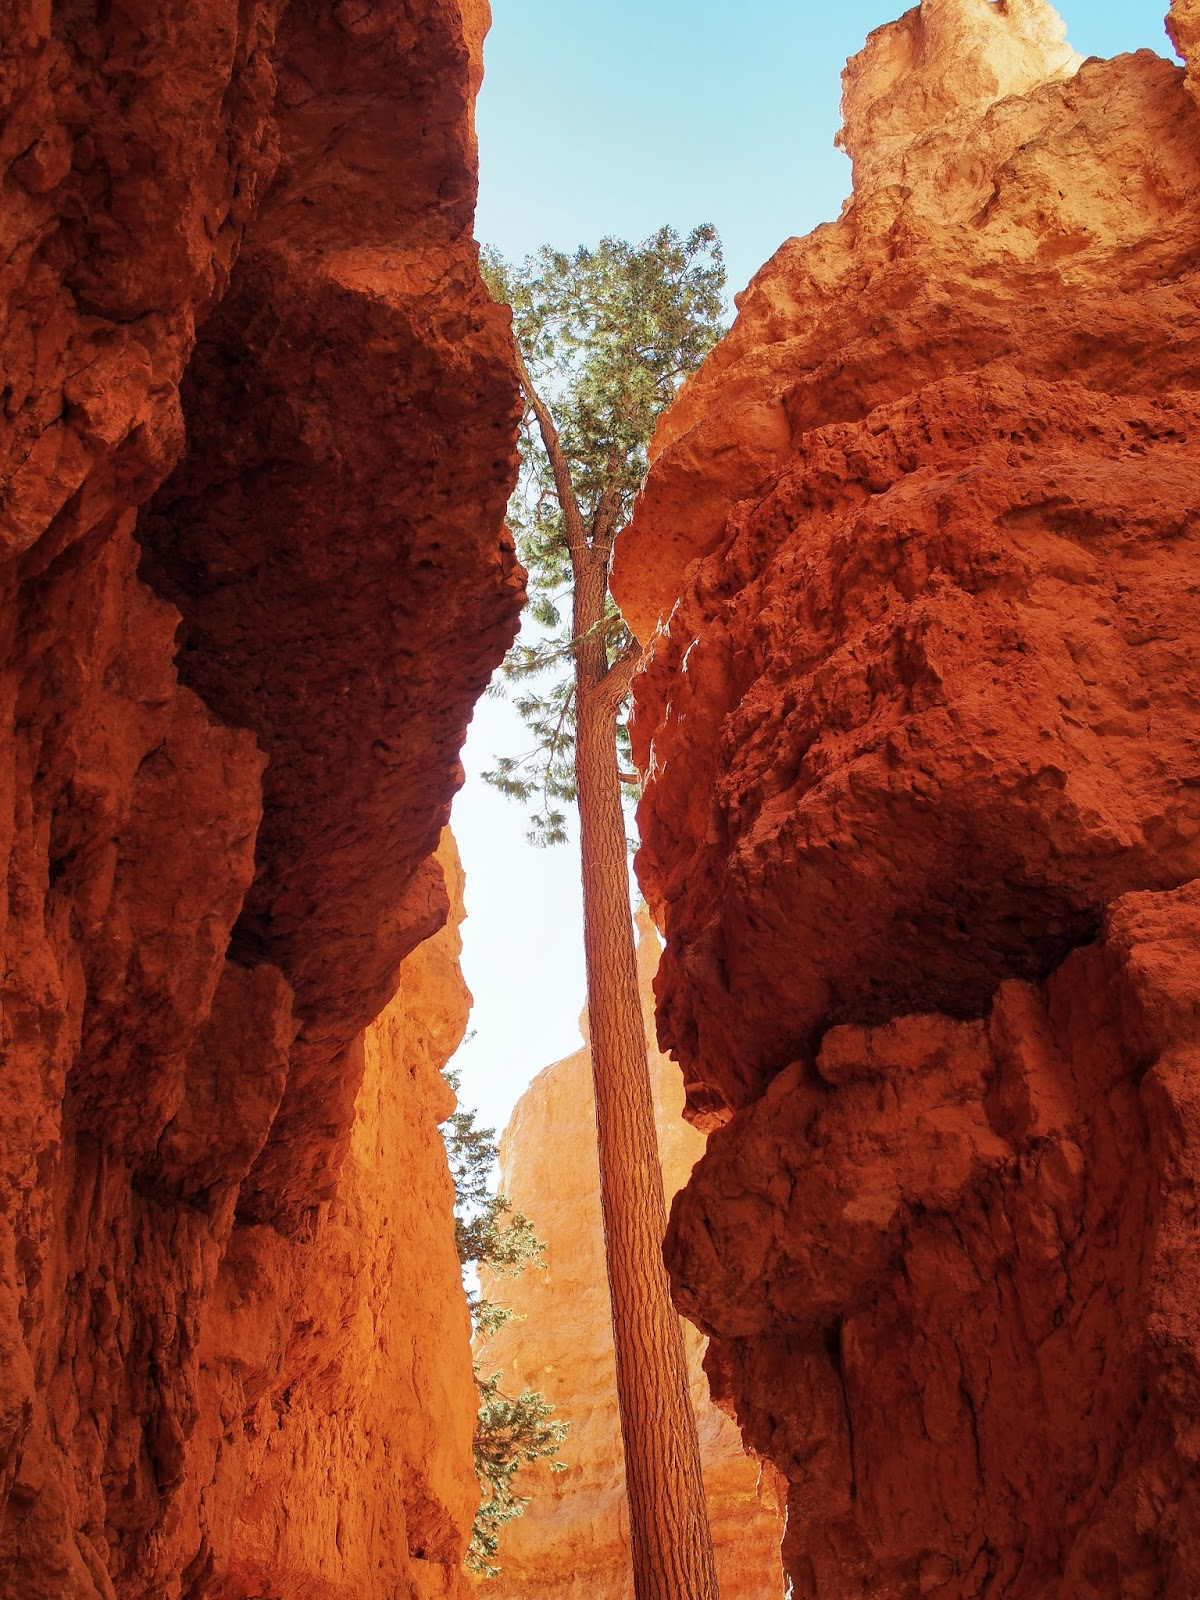 A Tree Grows on Wall Street I, #bryce #brycecanyon #wallstreet #navajolooptrail #navajoloop #utah 2014